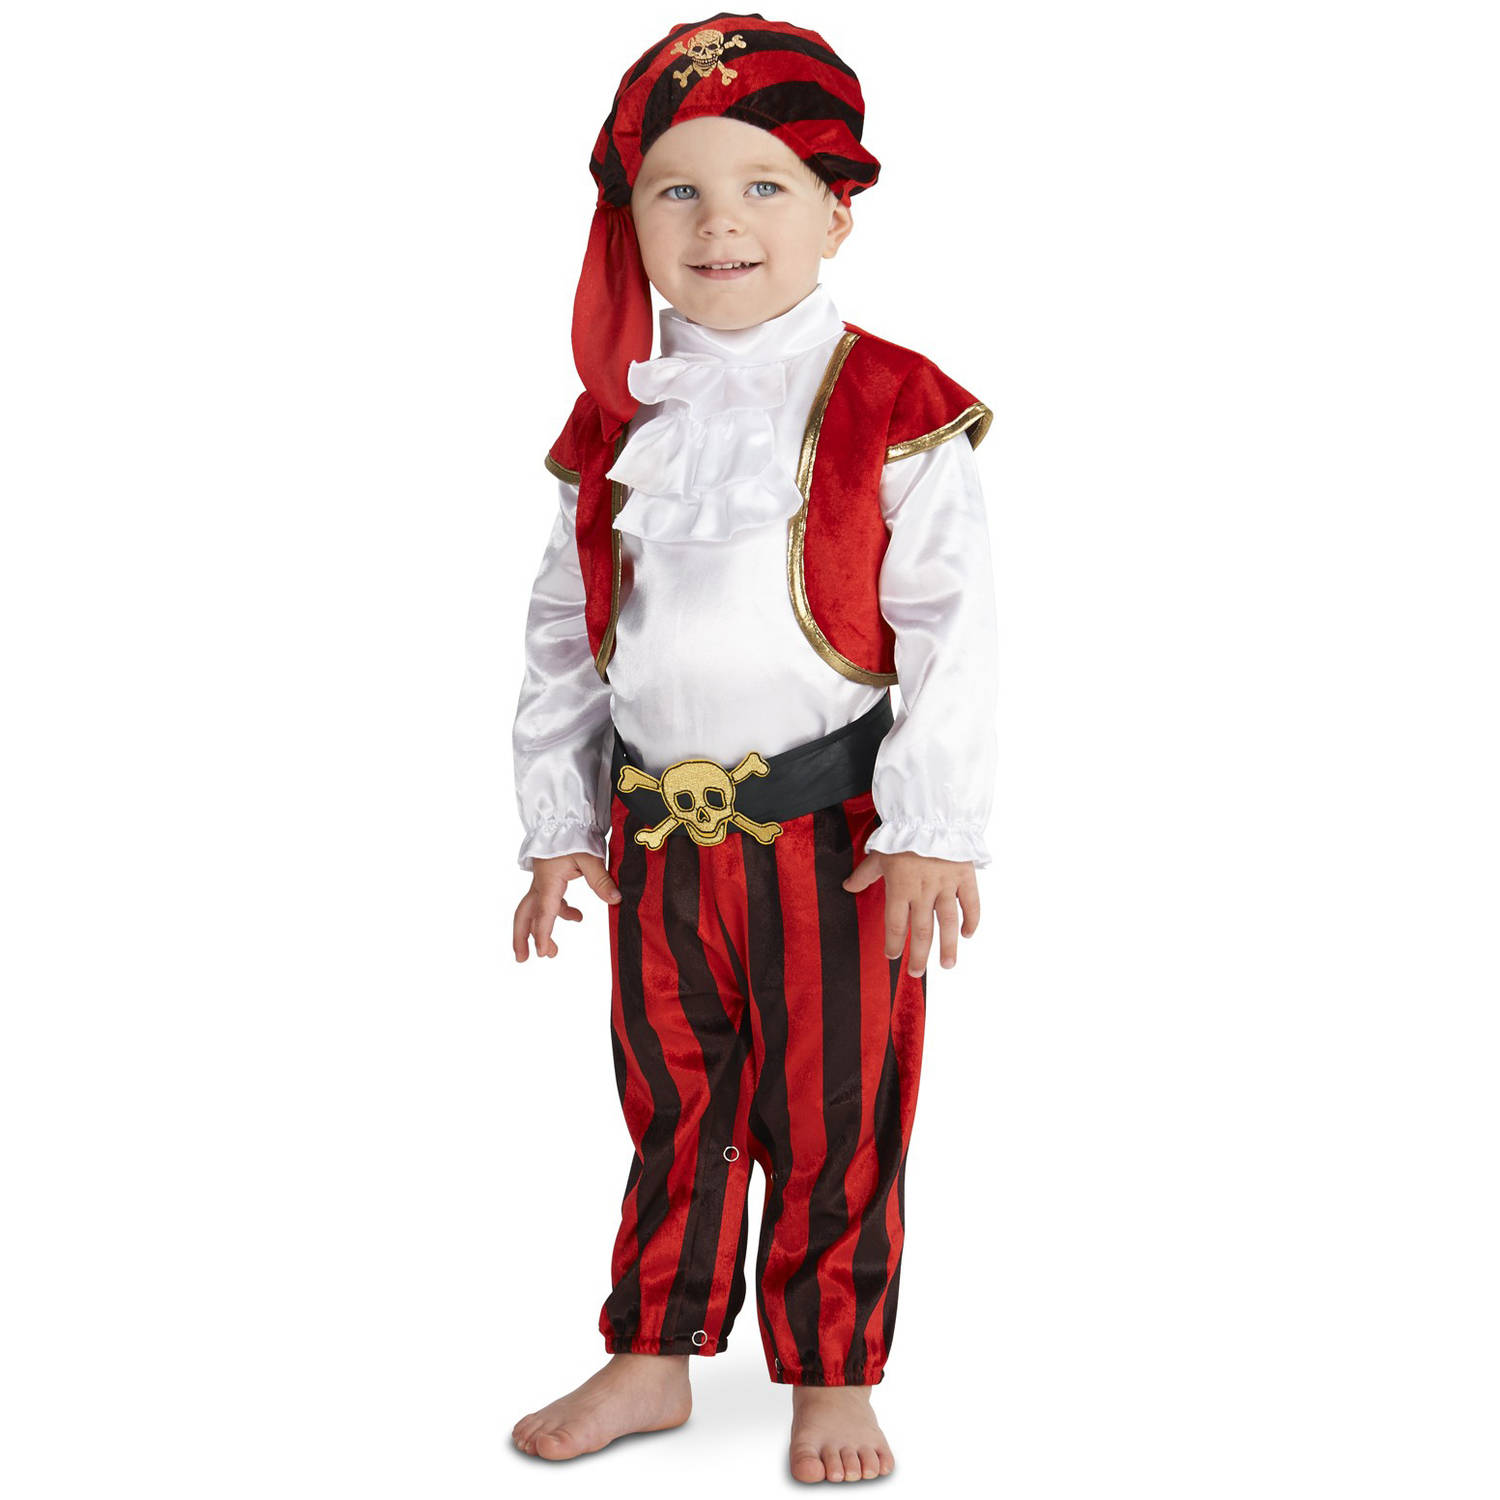 Arrrgh! Arrrgh! Pirate Toddler Halloween Costume, Size 3T-4T by Buy Seasons